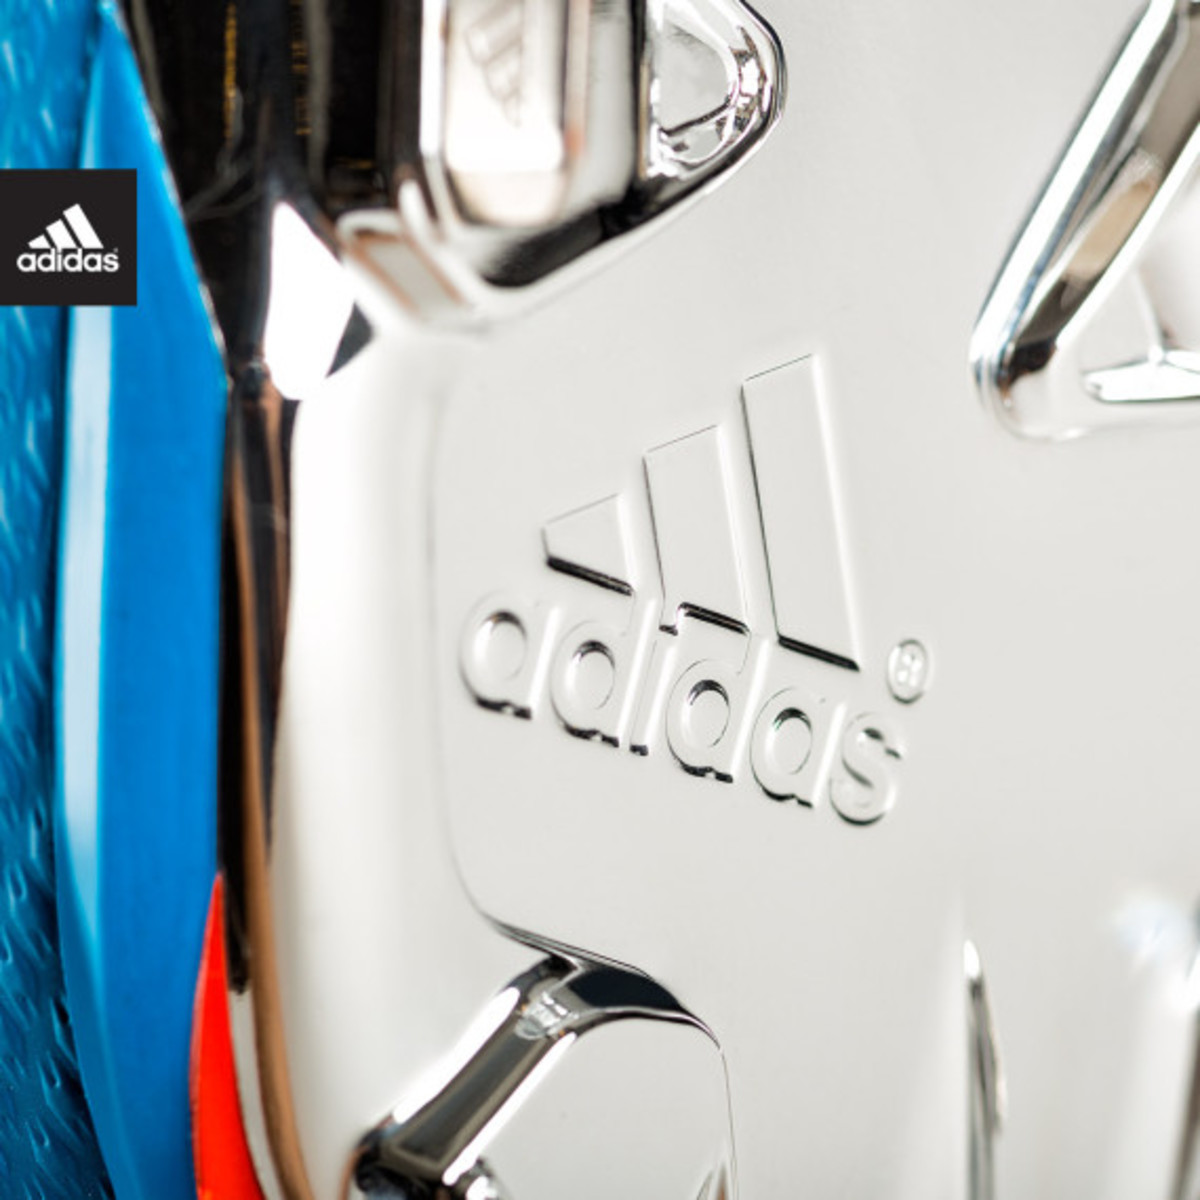 adidas-unveils-mlb-all-star-energy-boost-cleat-09